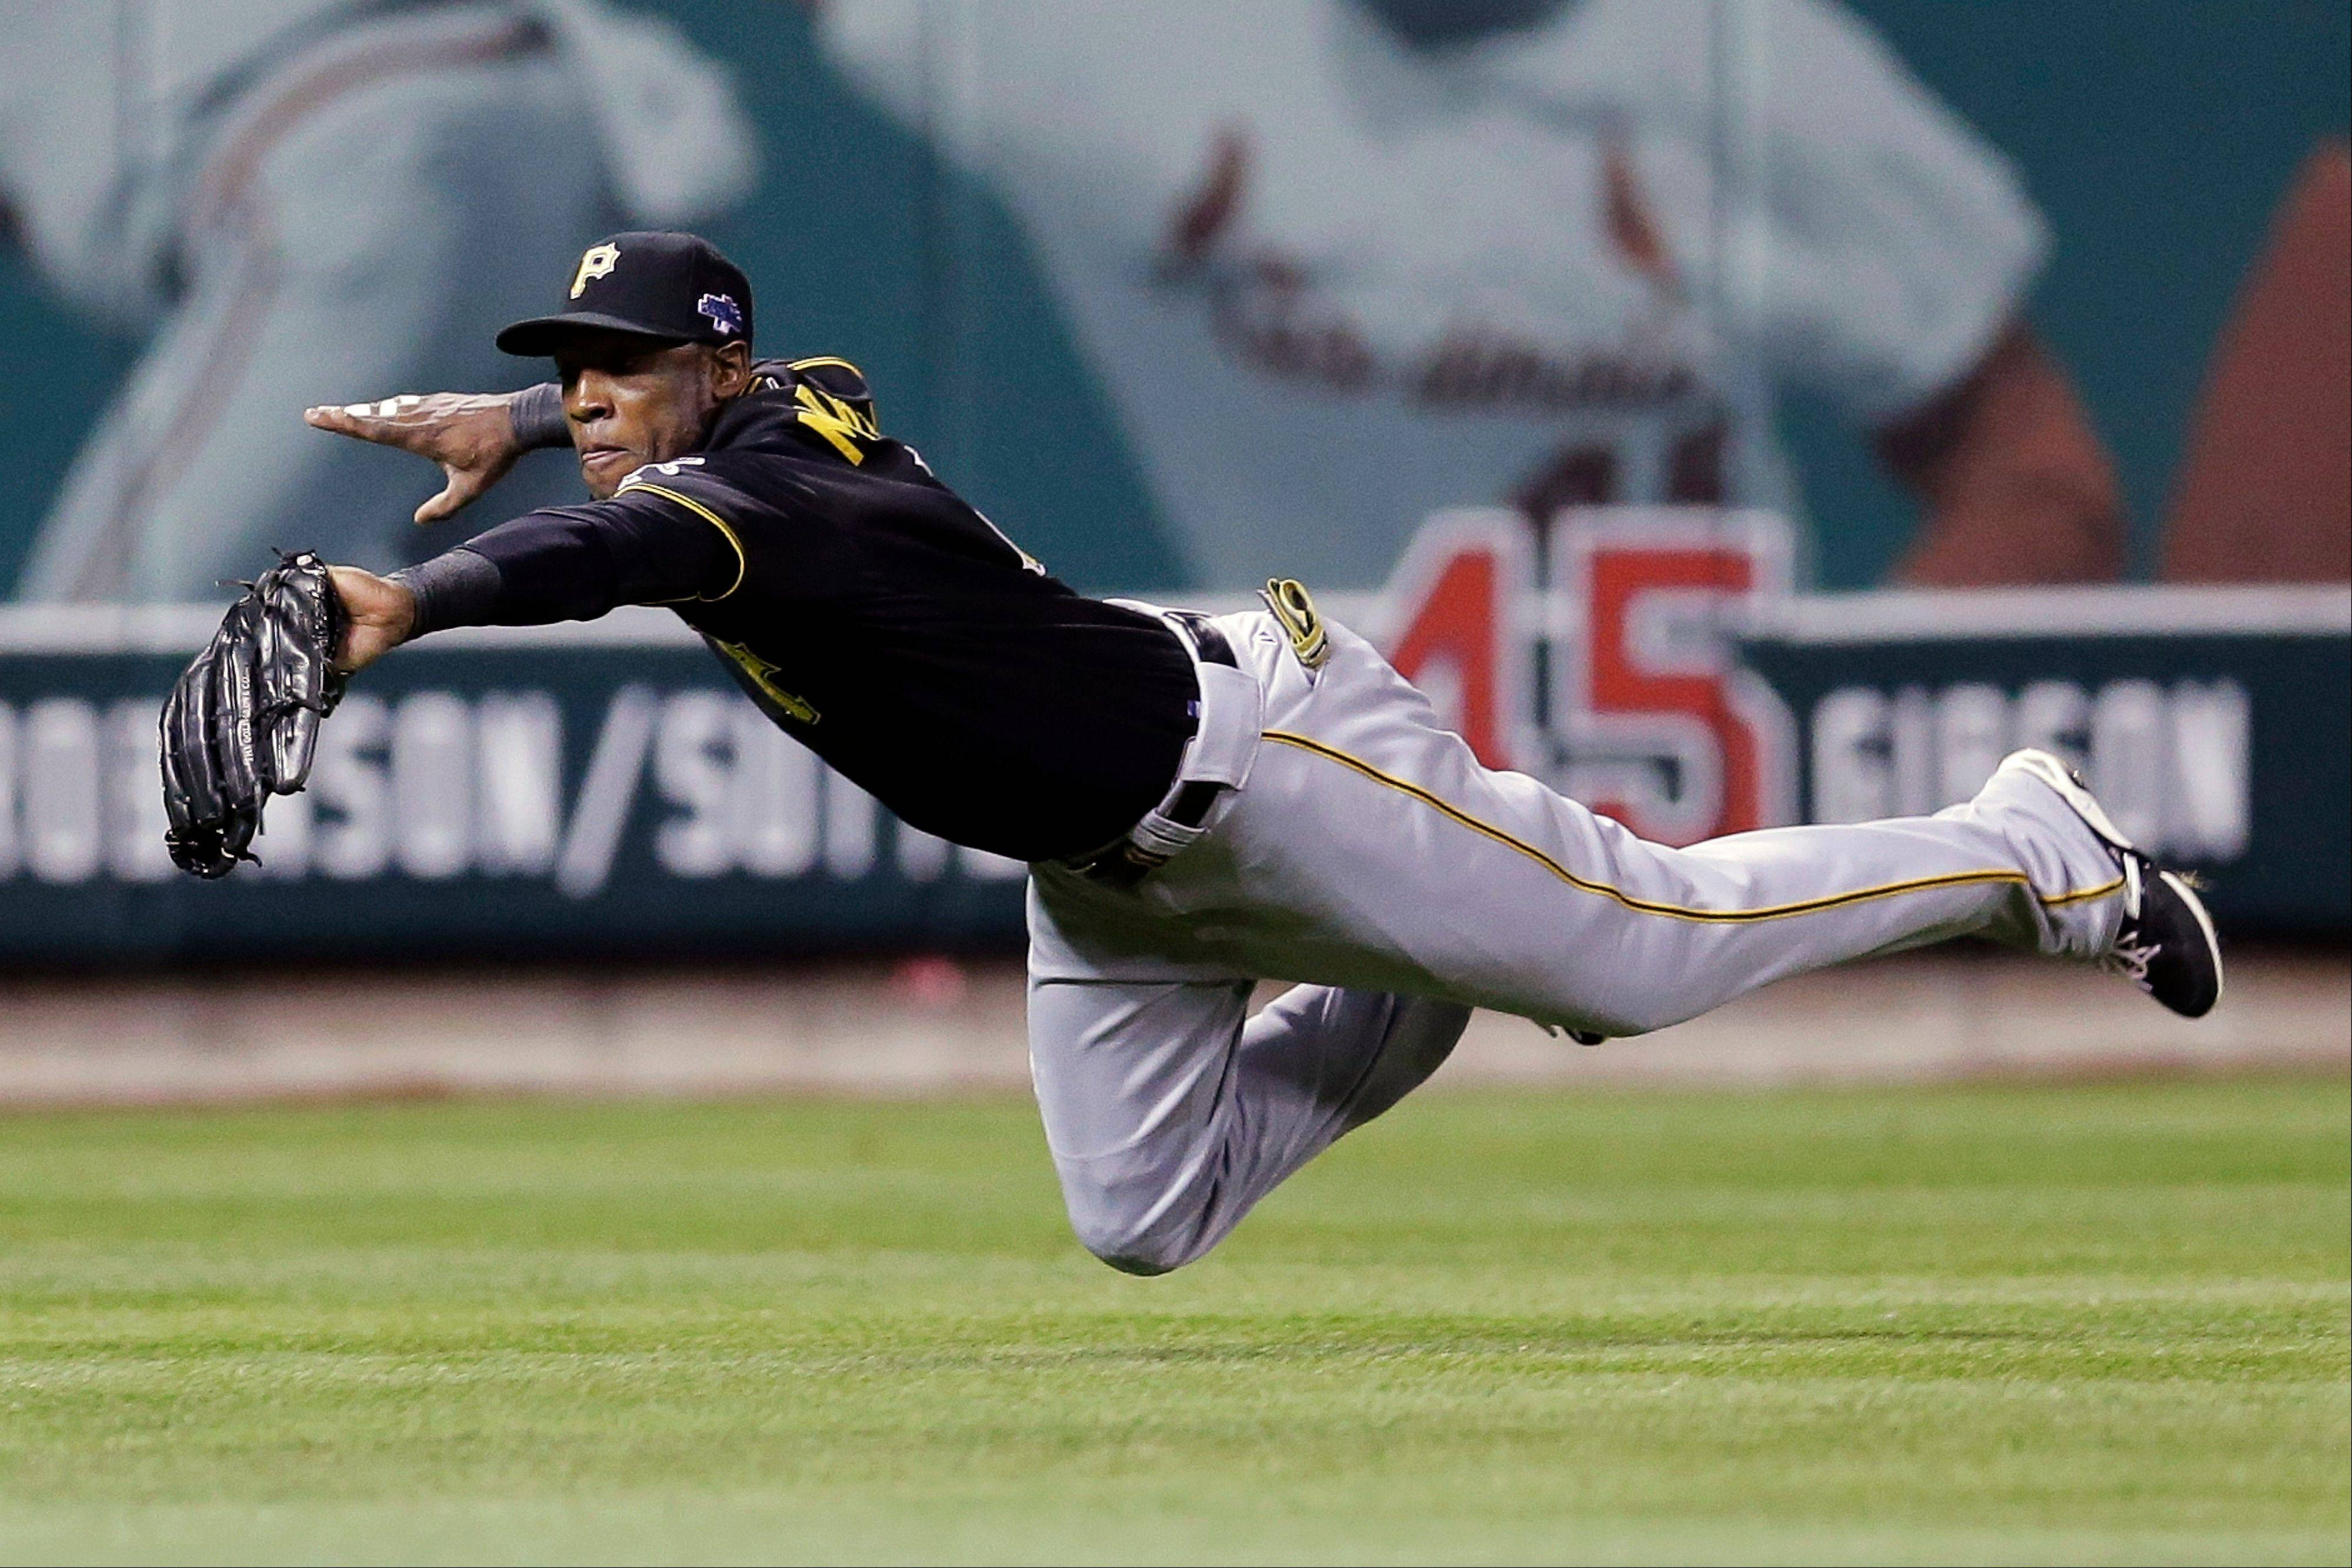 Pirates left fielder Starling Marte makes a diving catch on a ball hit by the Cardinals' Matt Carpenter in the third inning.